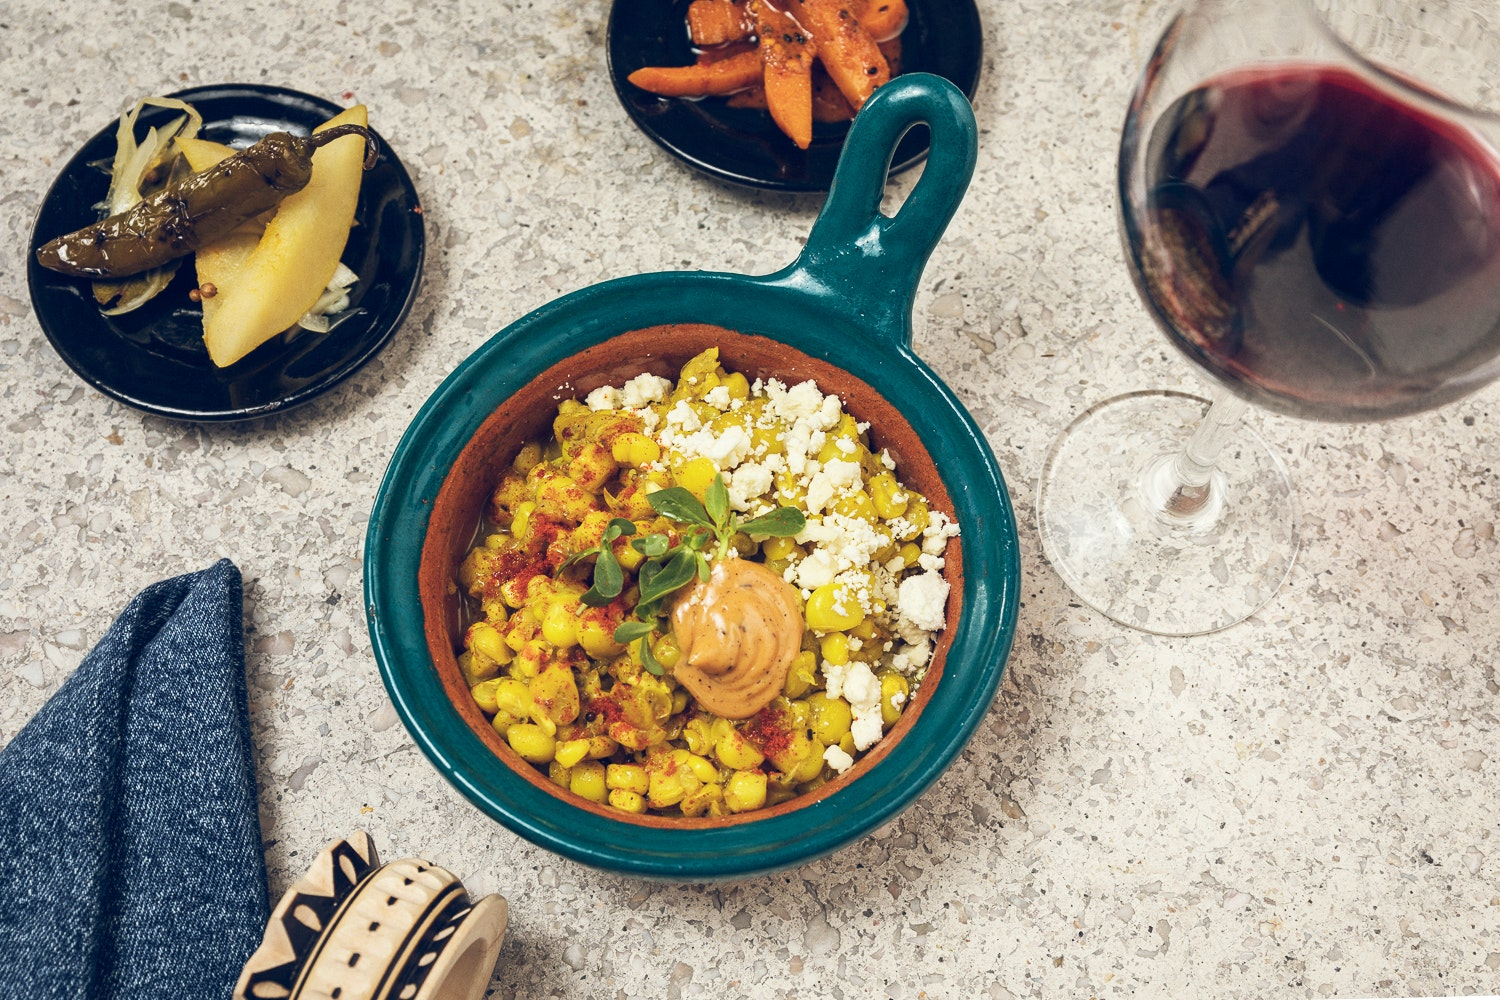 Mexico City restaurant Masala y Maiz serves a number of corn-based dishes.